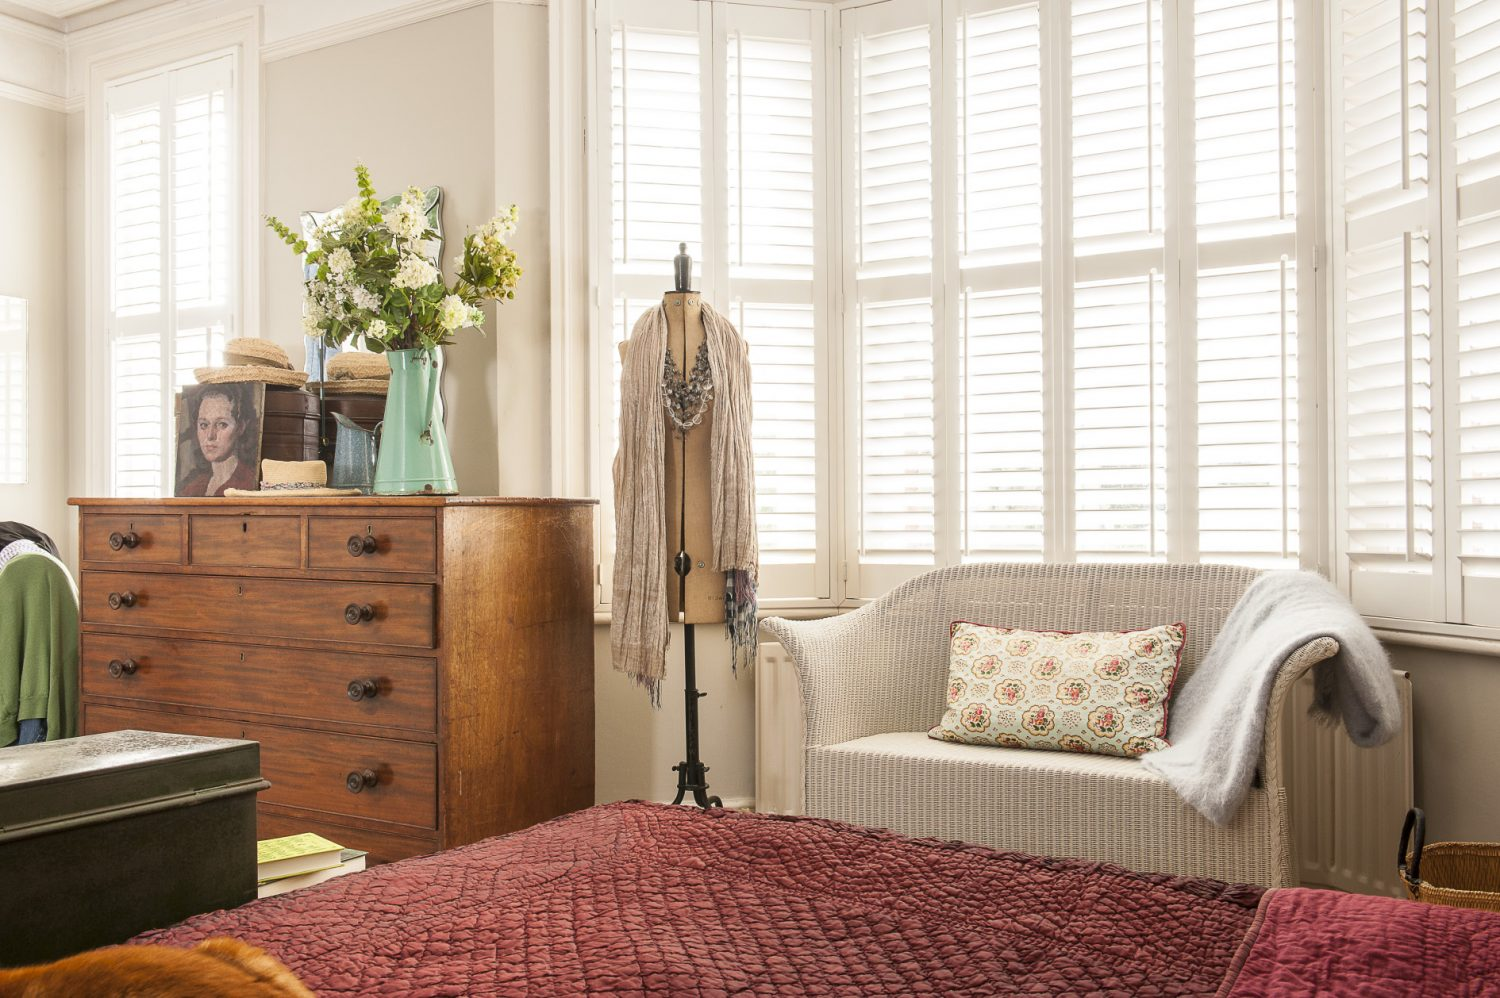 The master bedroom features a superb period chest of drawers in glowing oak that Diana picked up for £75 at Lots Road auction. Behind it in the window is a Victorian tailor's dummy hung with a silk scarf and a blizzard of beads